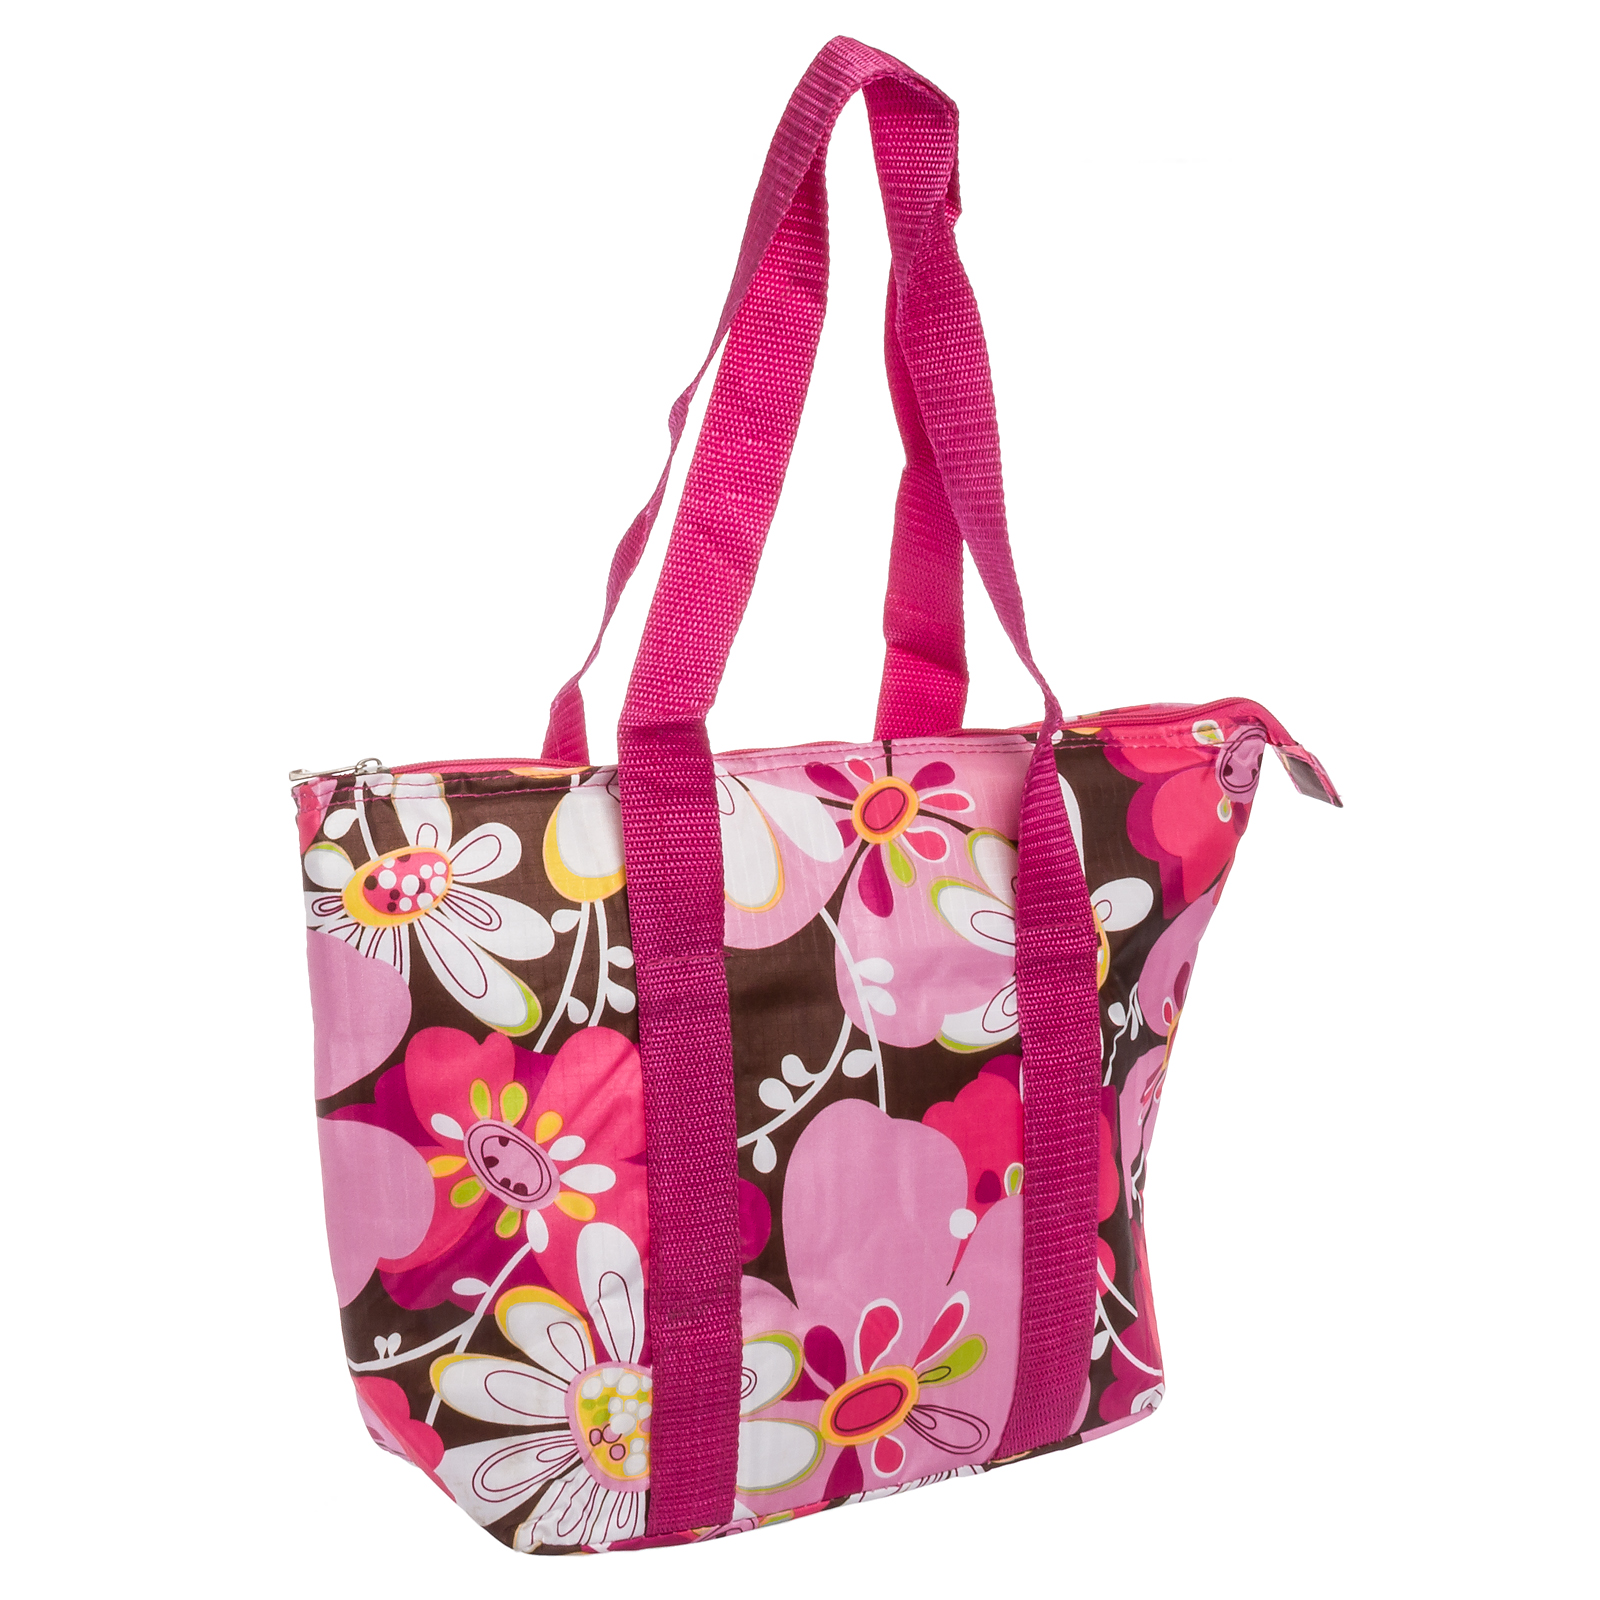 Model Womenu0026#39;s Lunch Bag Insulated |Monogram | 6 Colors